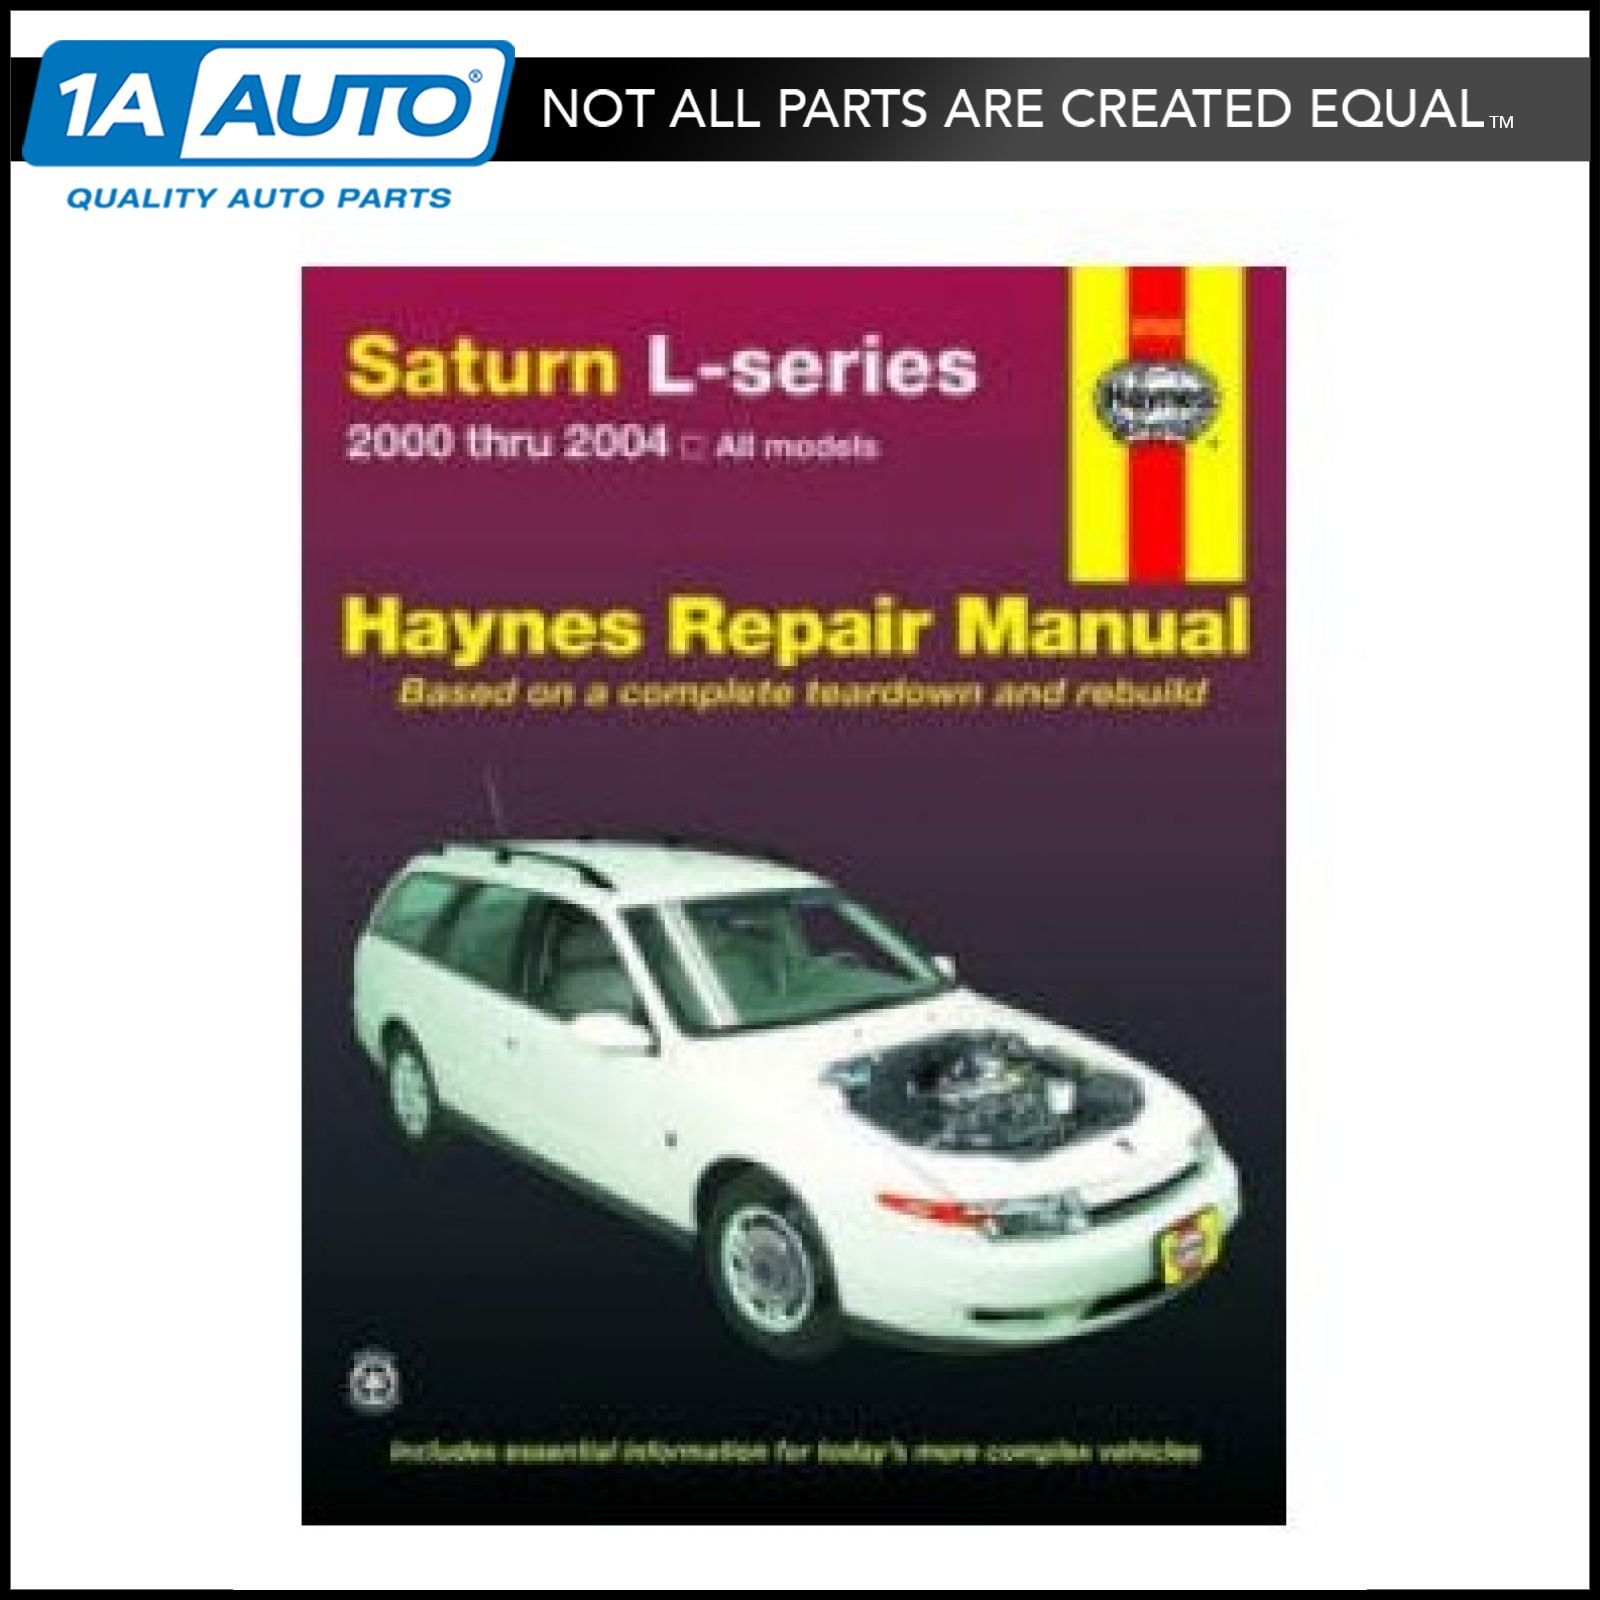 haynes repair manual for saturn l series 00 01 02 03 04 ebay rh ebay com haynes repair manual saturn l-series 2000 Saturn L Series Manual